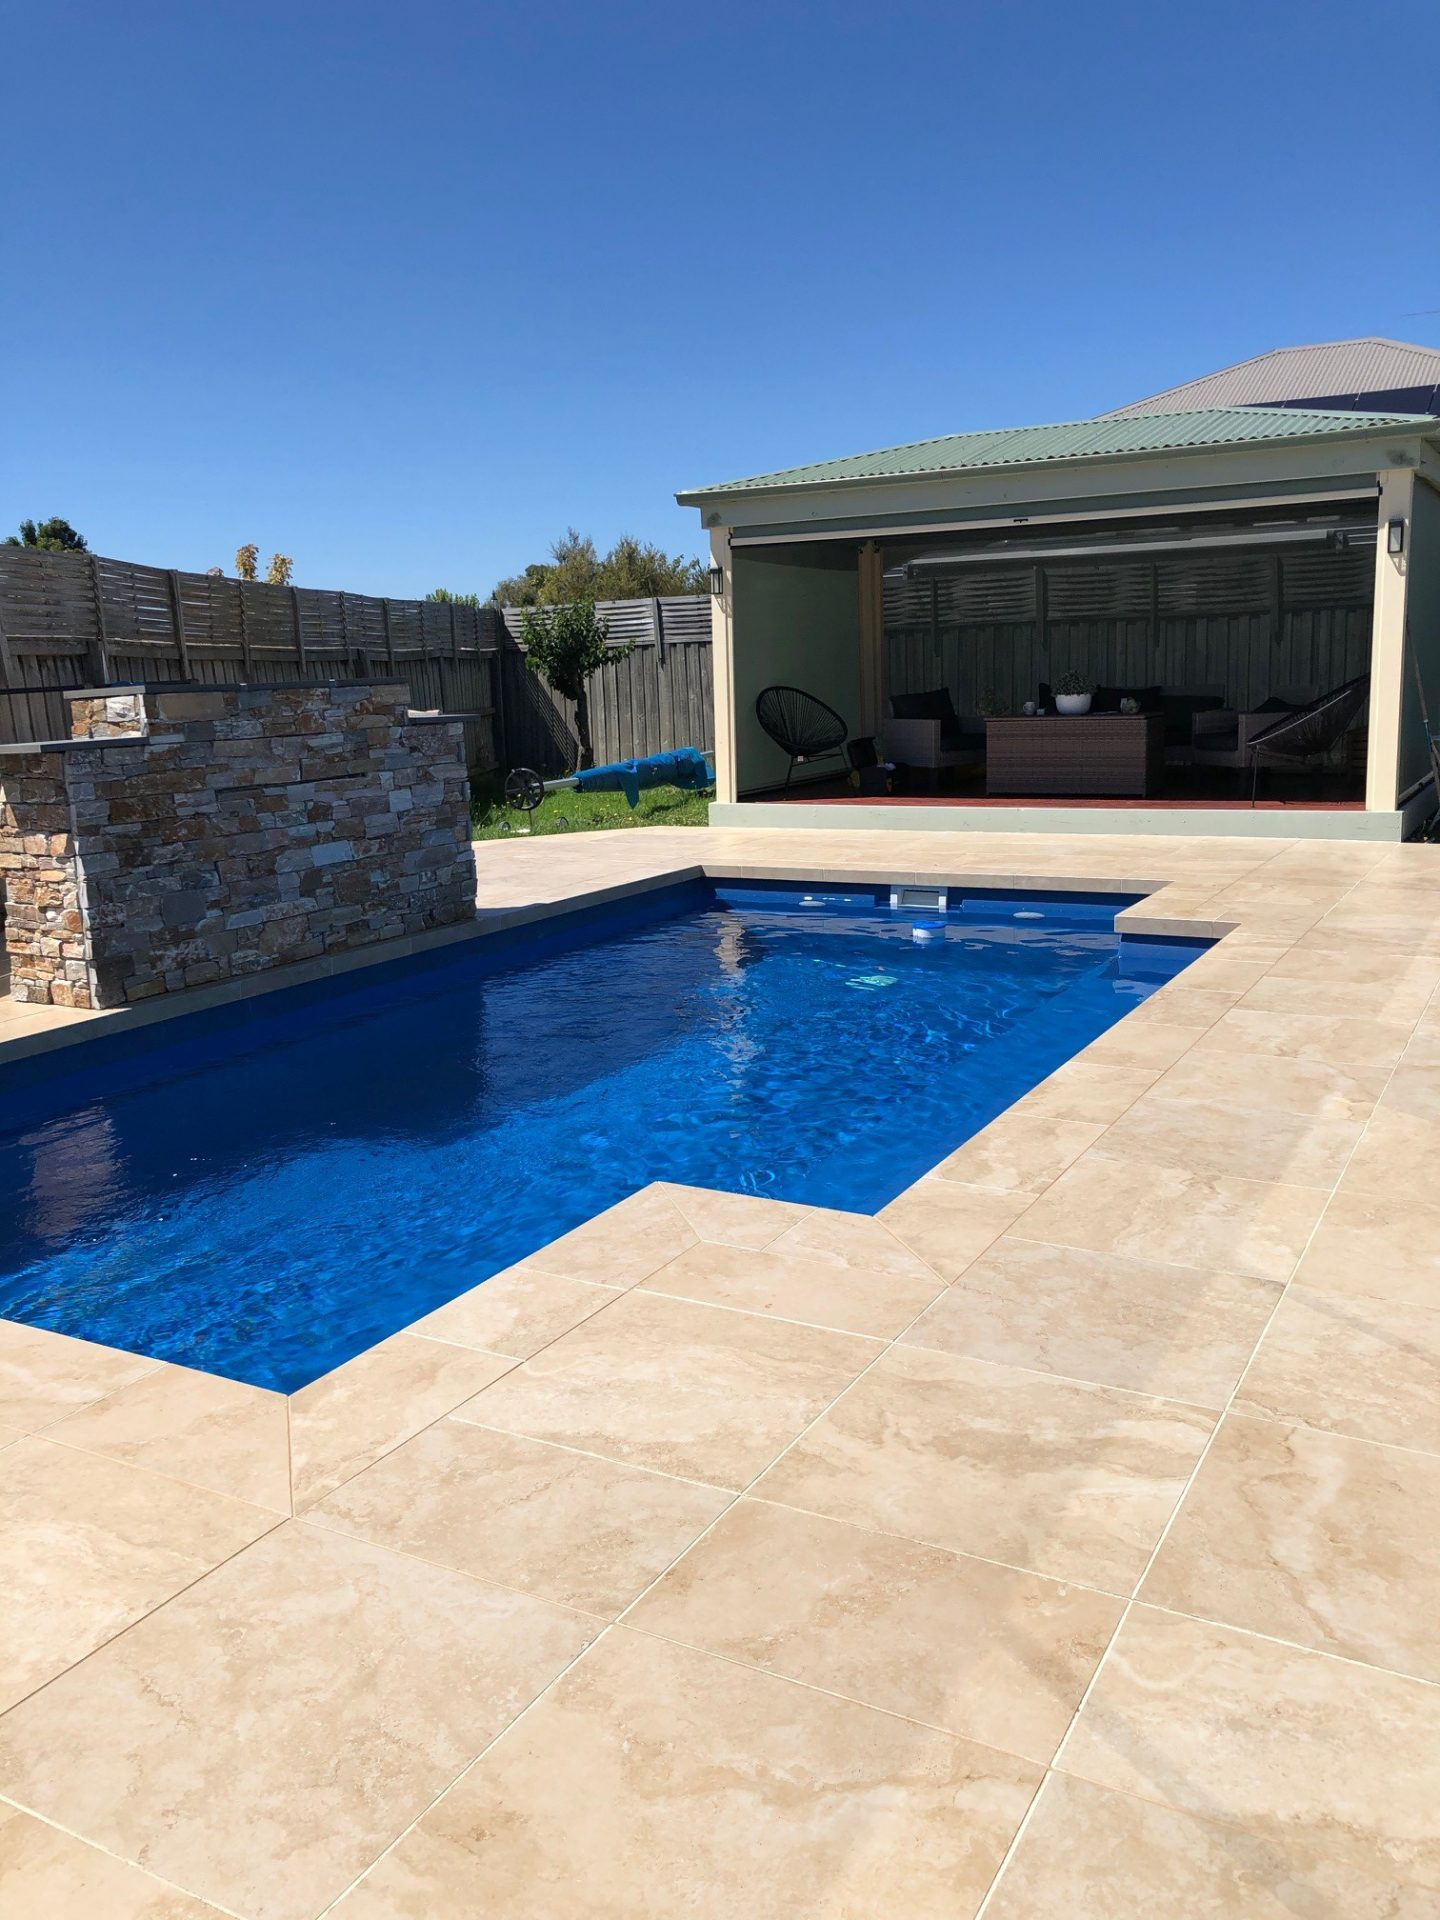 Non-Slip Pool Deck Swiss GriP